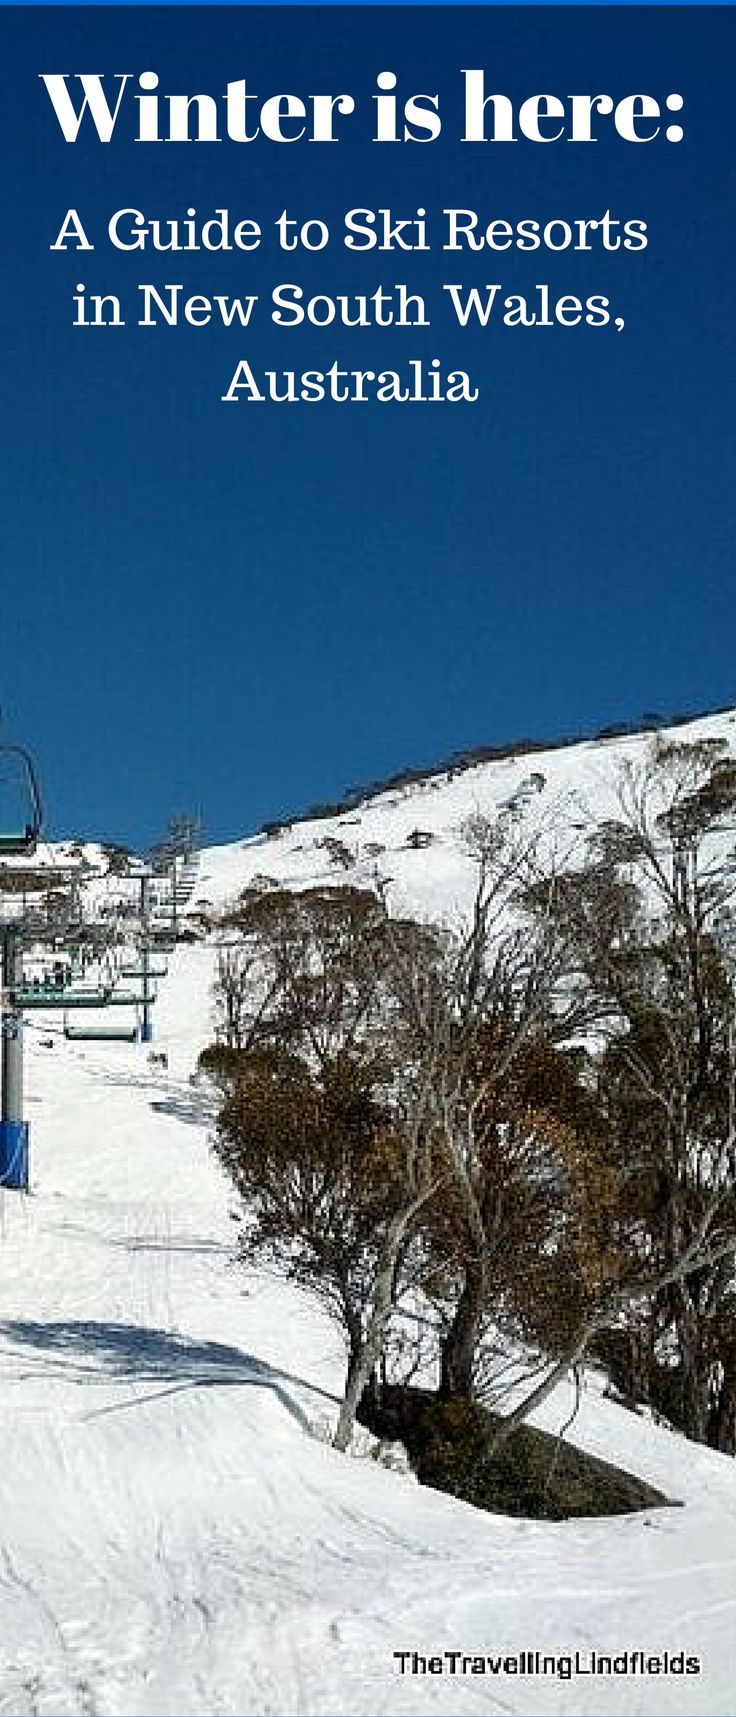 A guide to ski resorts in new south wales australia http